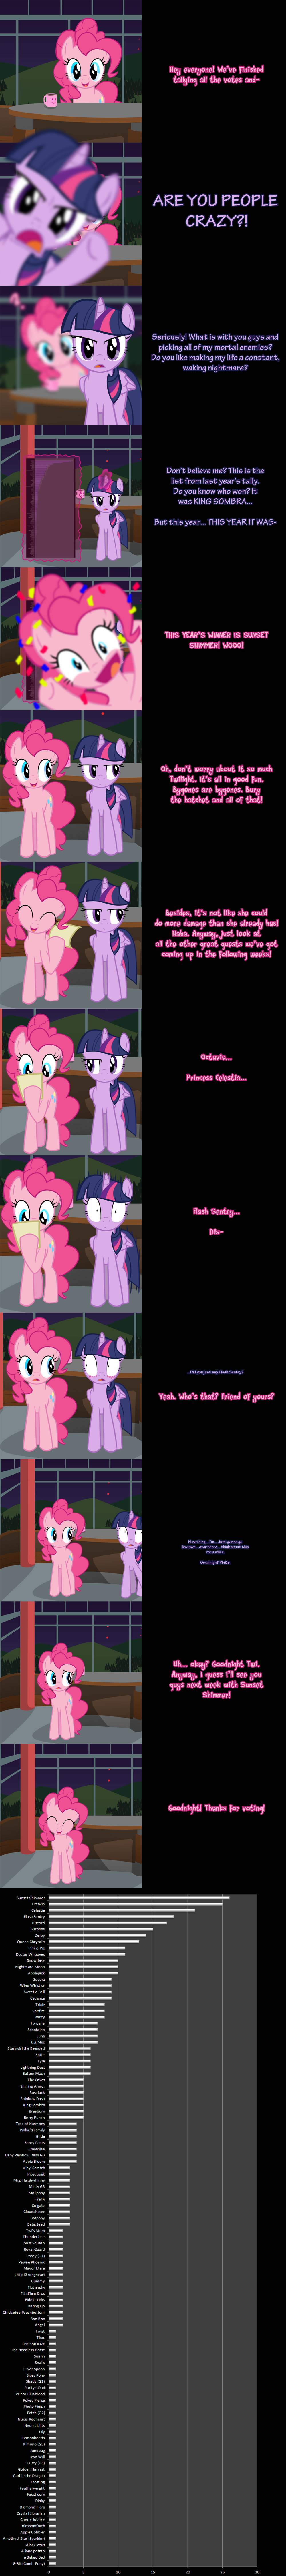 Pinkie Says Goodnight - And the Winner is...